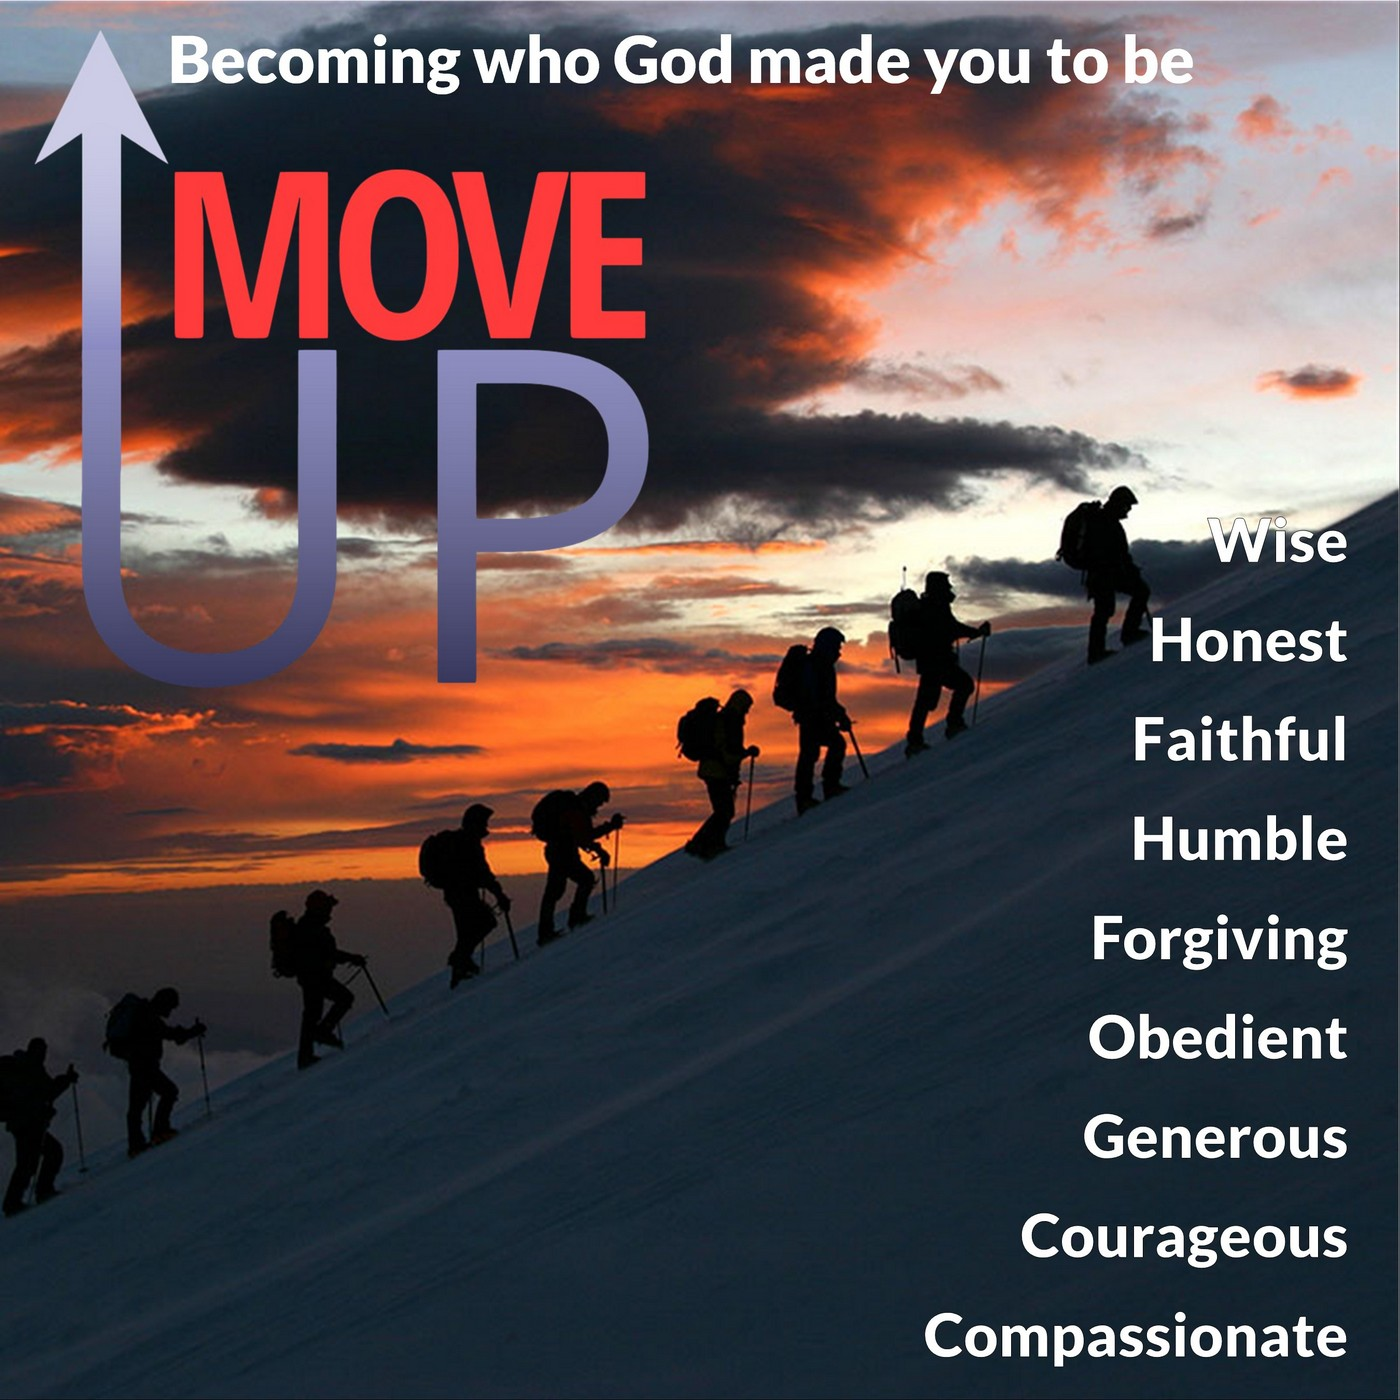 Move Up: Becoming who God made you to be